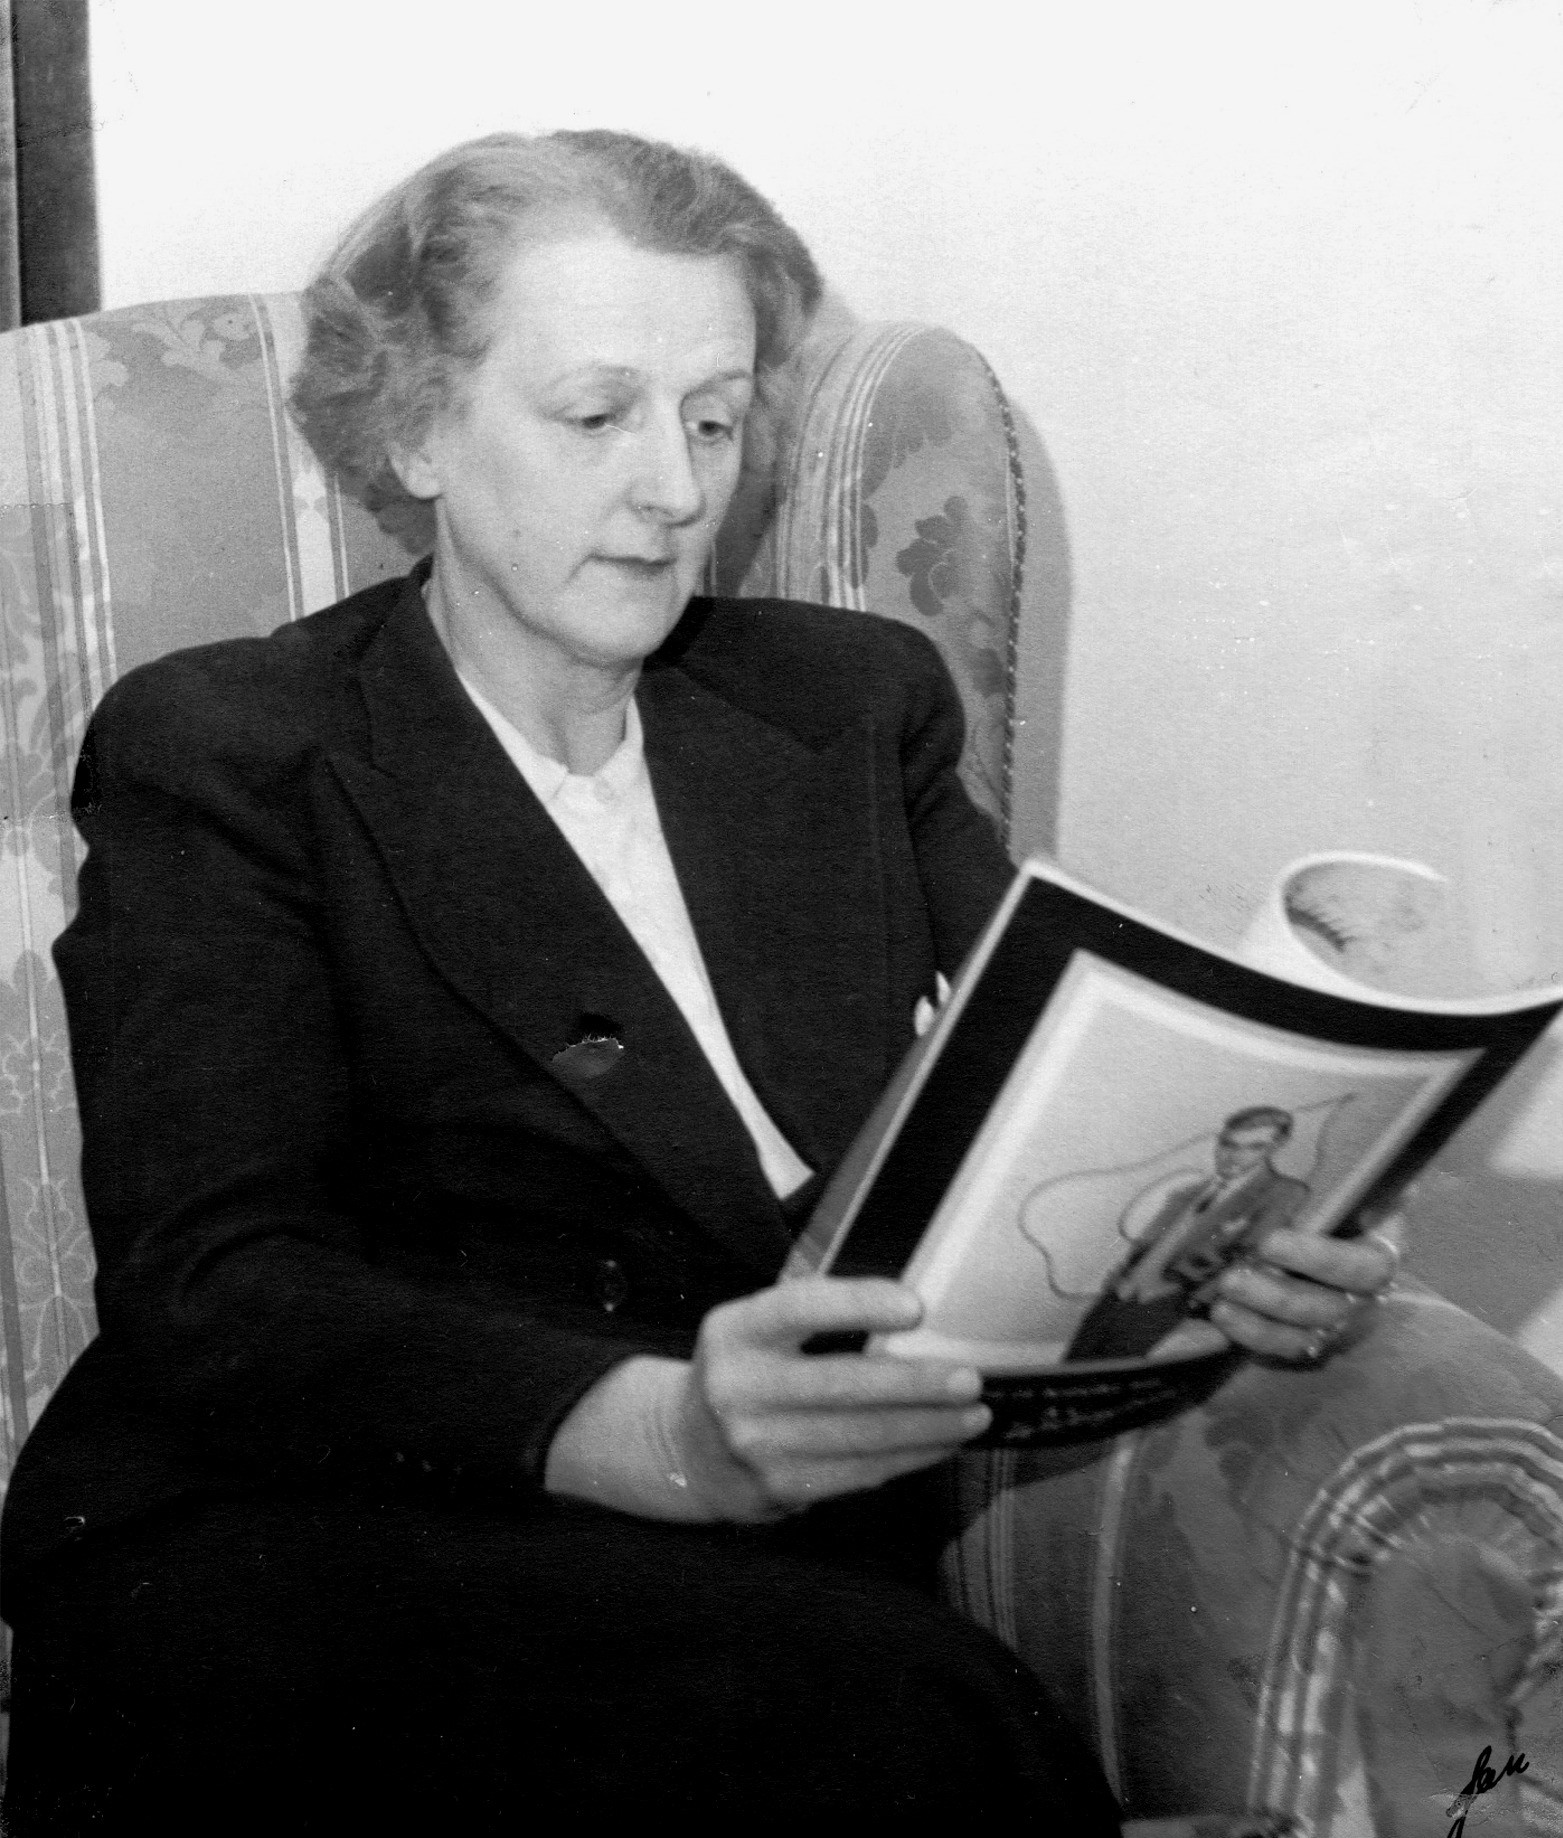 Brita Lüning-Malmstedt, circa 1950. Photographer unknown (privately owned image)